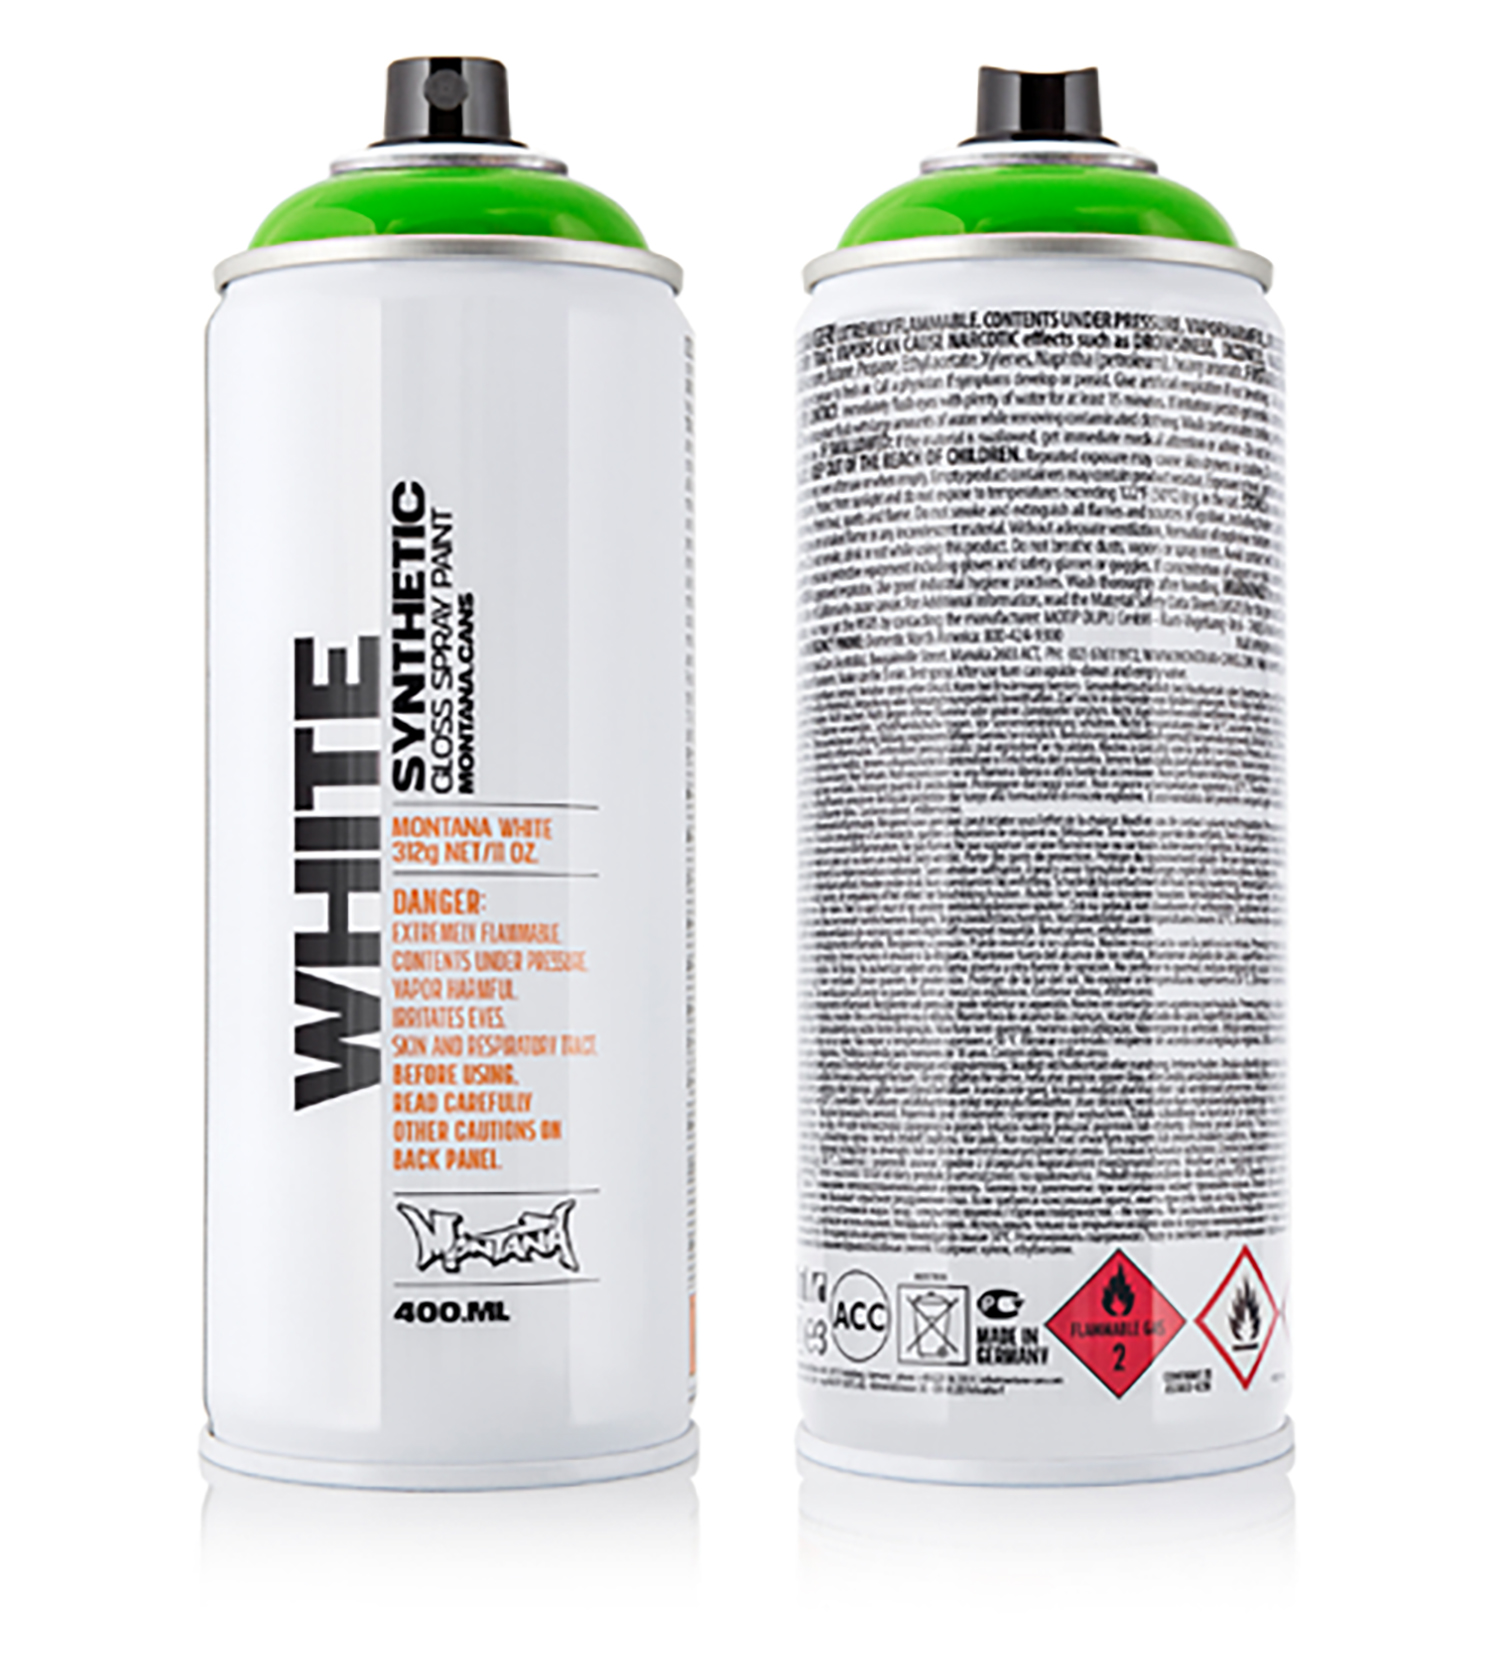 MONTANA-WHITE-SPRAY-400ML-6040